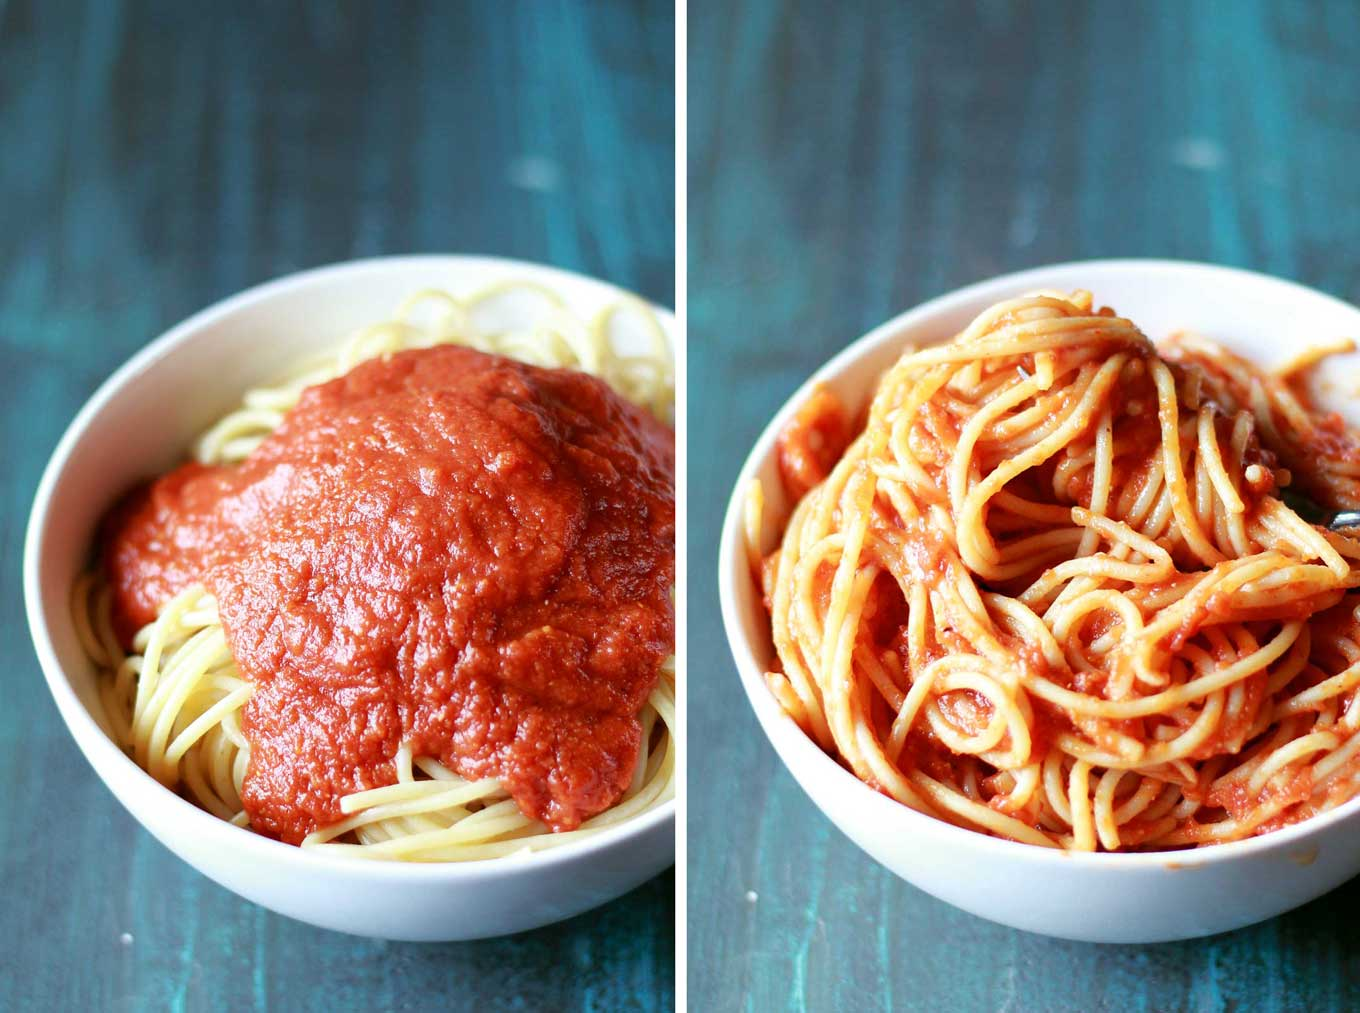 Make this protein-packed marinara sauce in your pressure cooker in 30 minutes! Vegan, gluten-free, and so healthy with veggies and lentils hidden in the sauce!   https://passtheplants.com